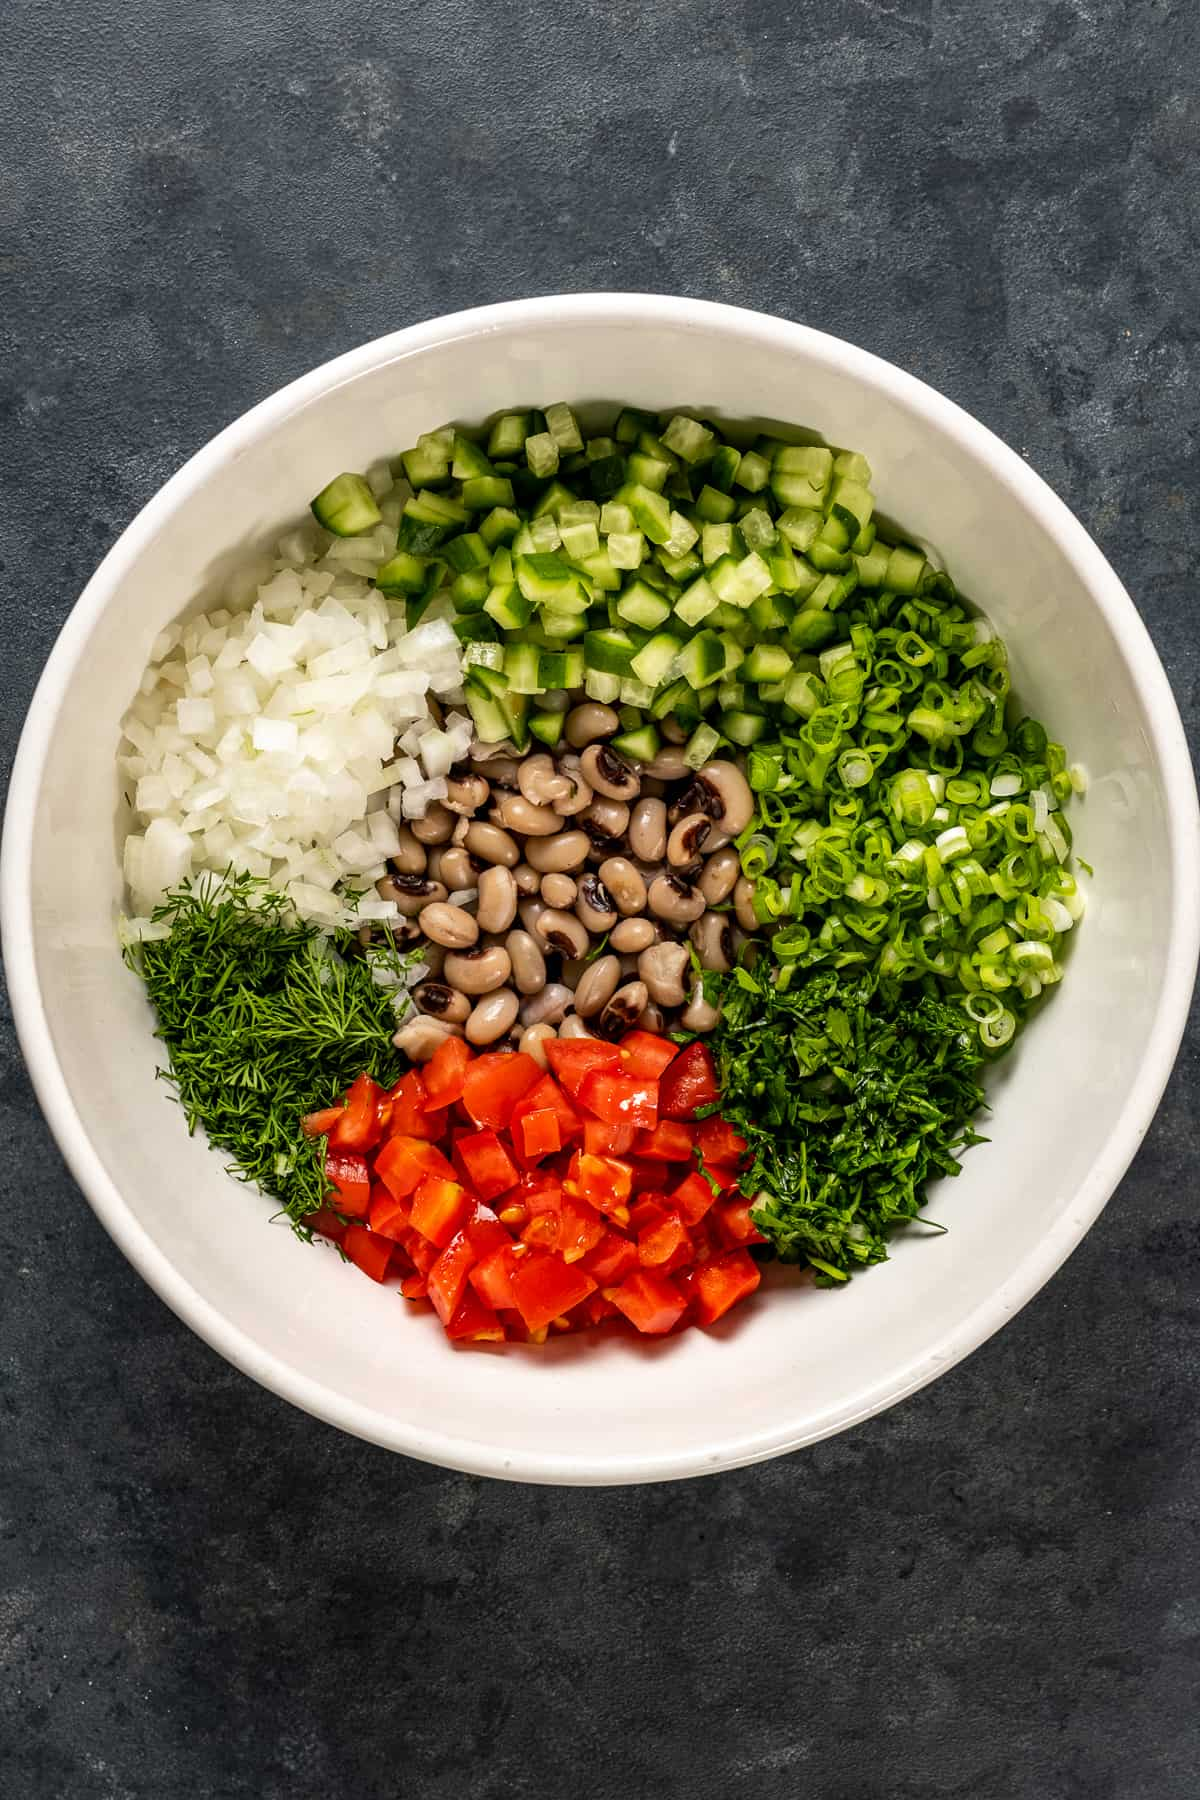 Finely chopped onion, green onion, herbs, tomato and cooked black eyed peas in a white bowl.